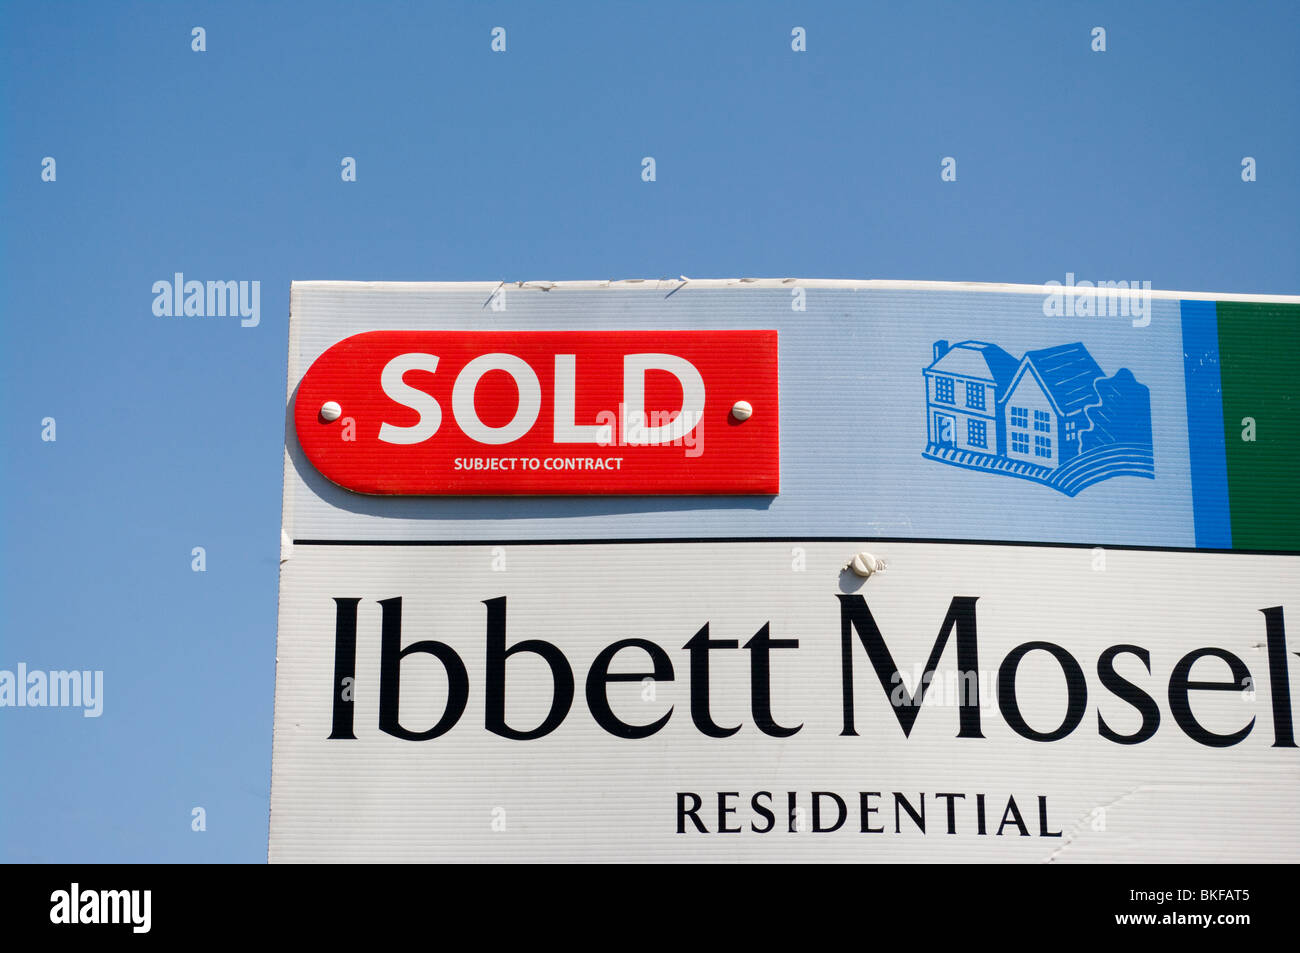 Sold Subject To Contract Estate Agent Sign - Stock Image